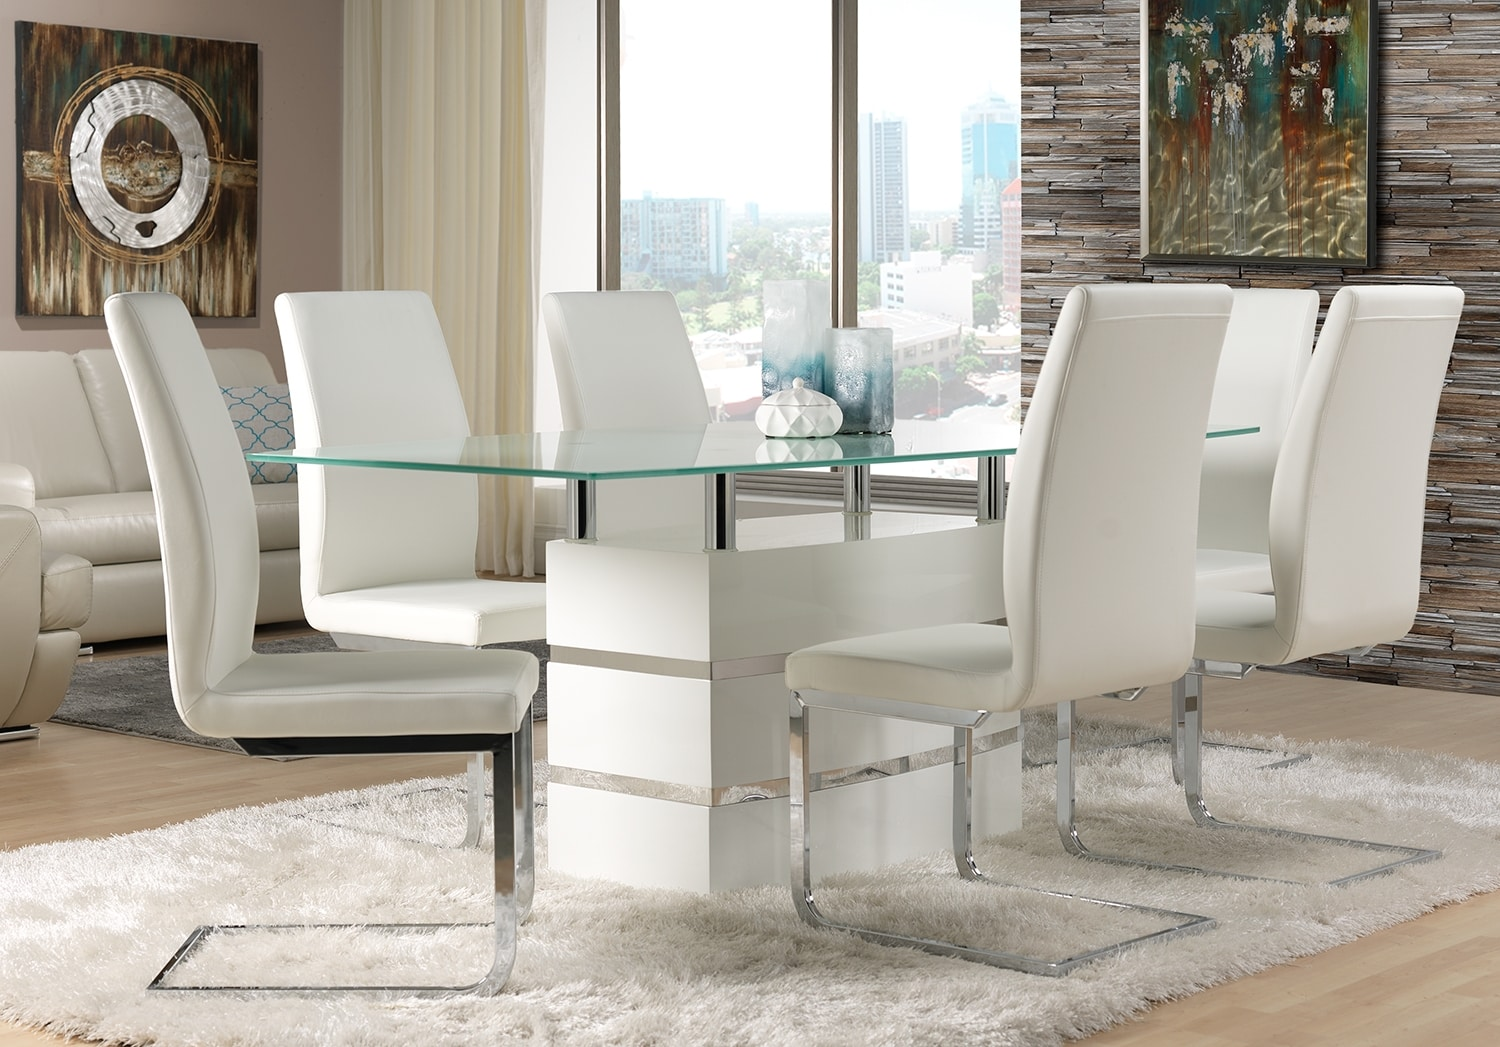 Altair 7-Piece Dining Room Set - White